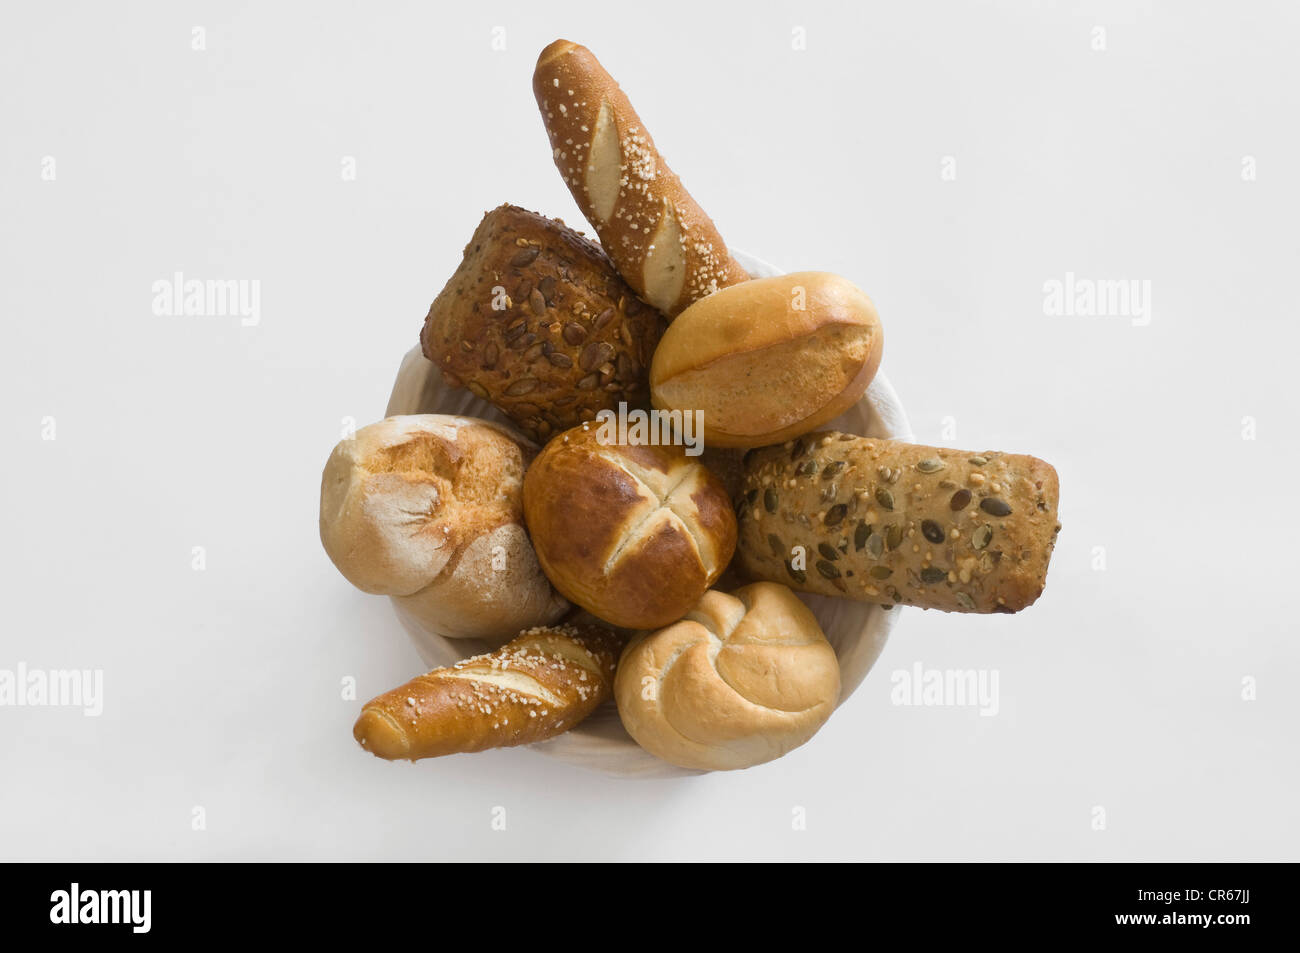 Basket with different kinds of rolls and pretzel varieties, breakfast rolls - Stock Image